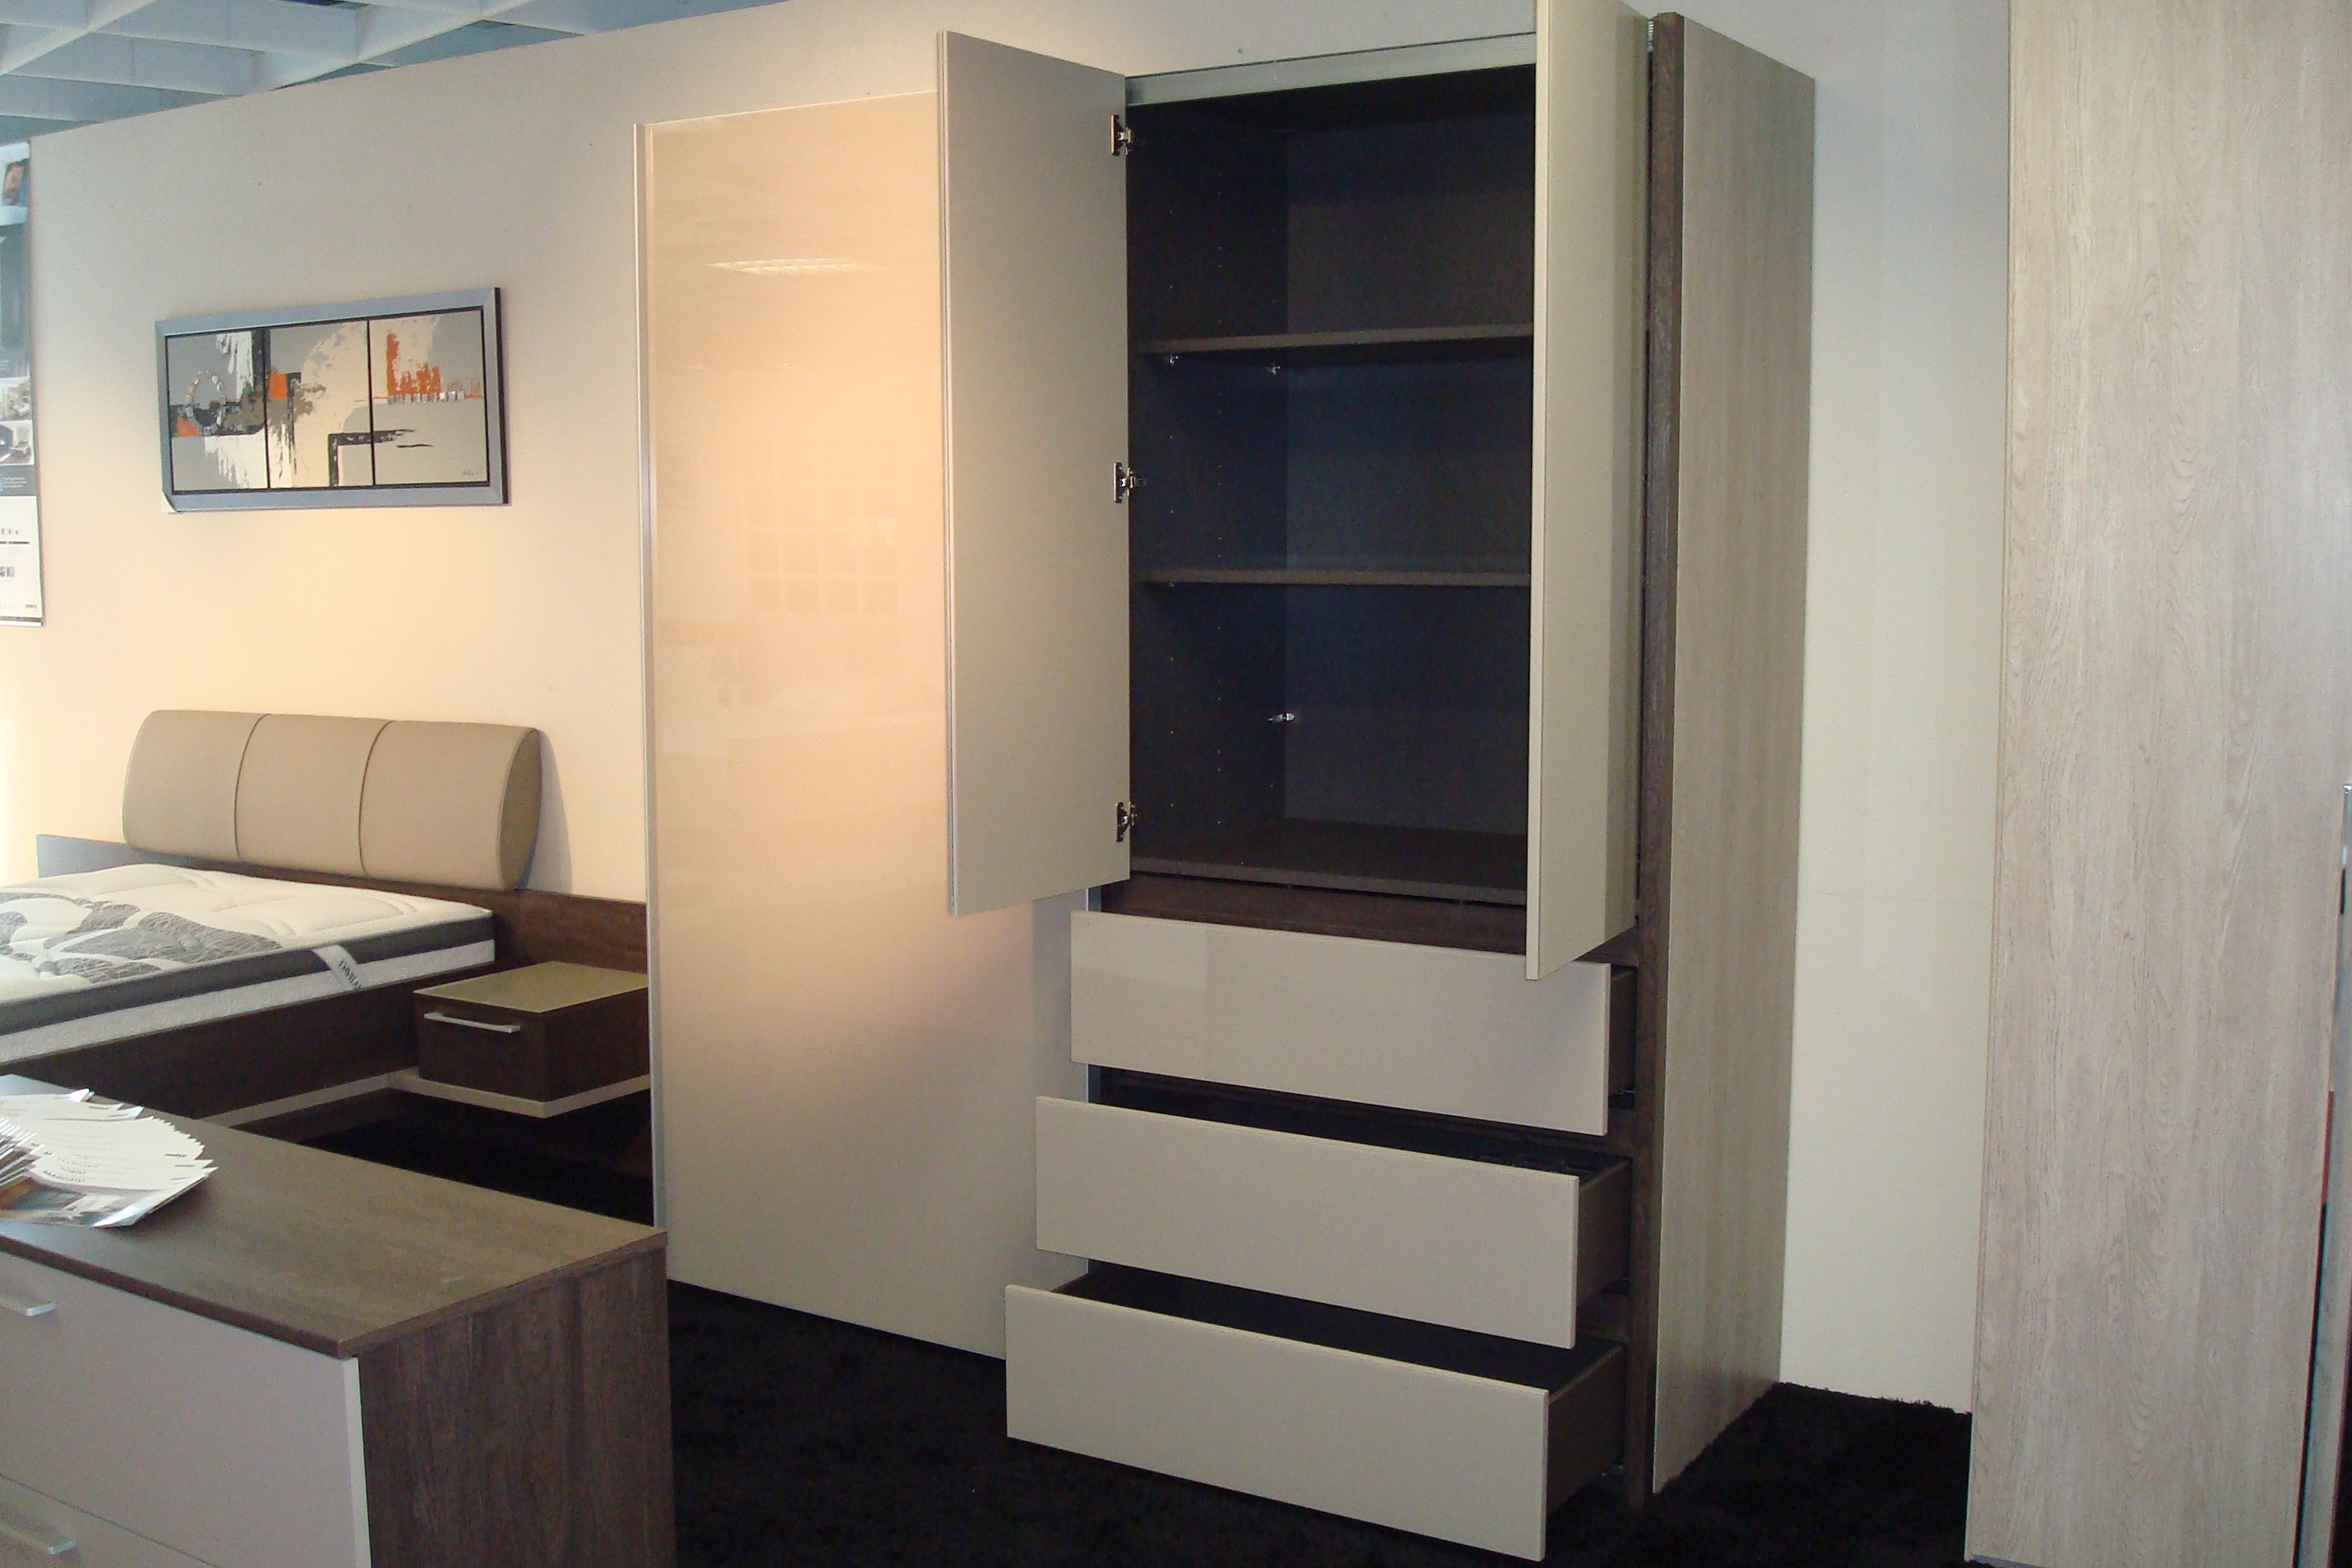 Chambres dressing meubles thibaud for Armoire nolte prix